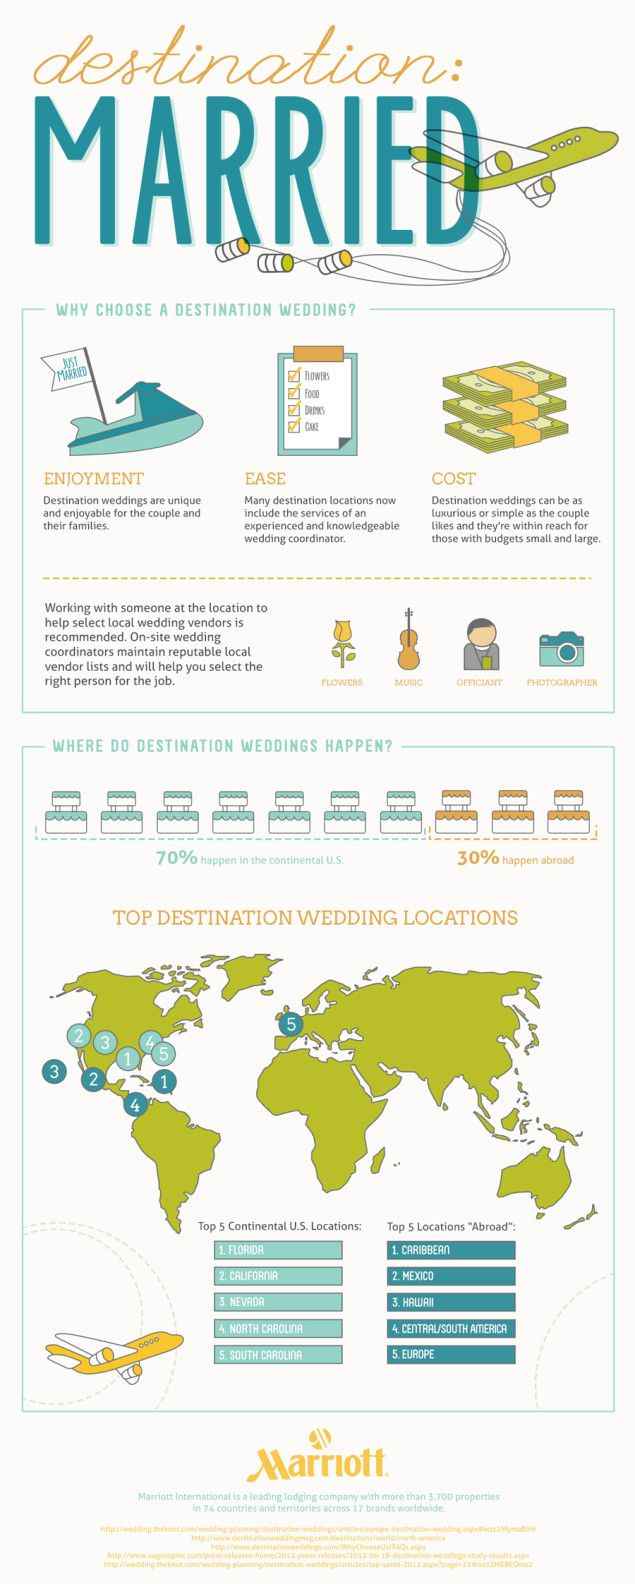 Ever Wondered About Having A Destination Wedding This Infographic Explains The Reasons And Top Places